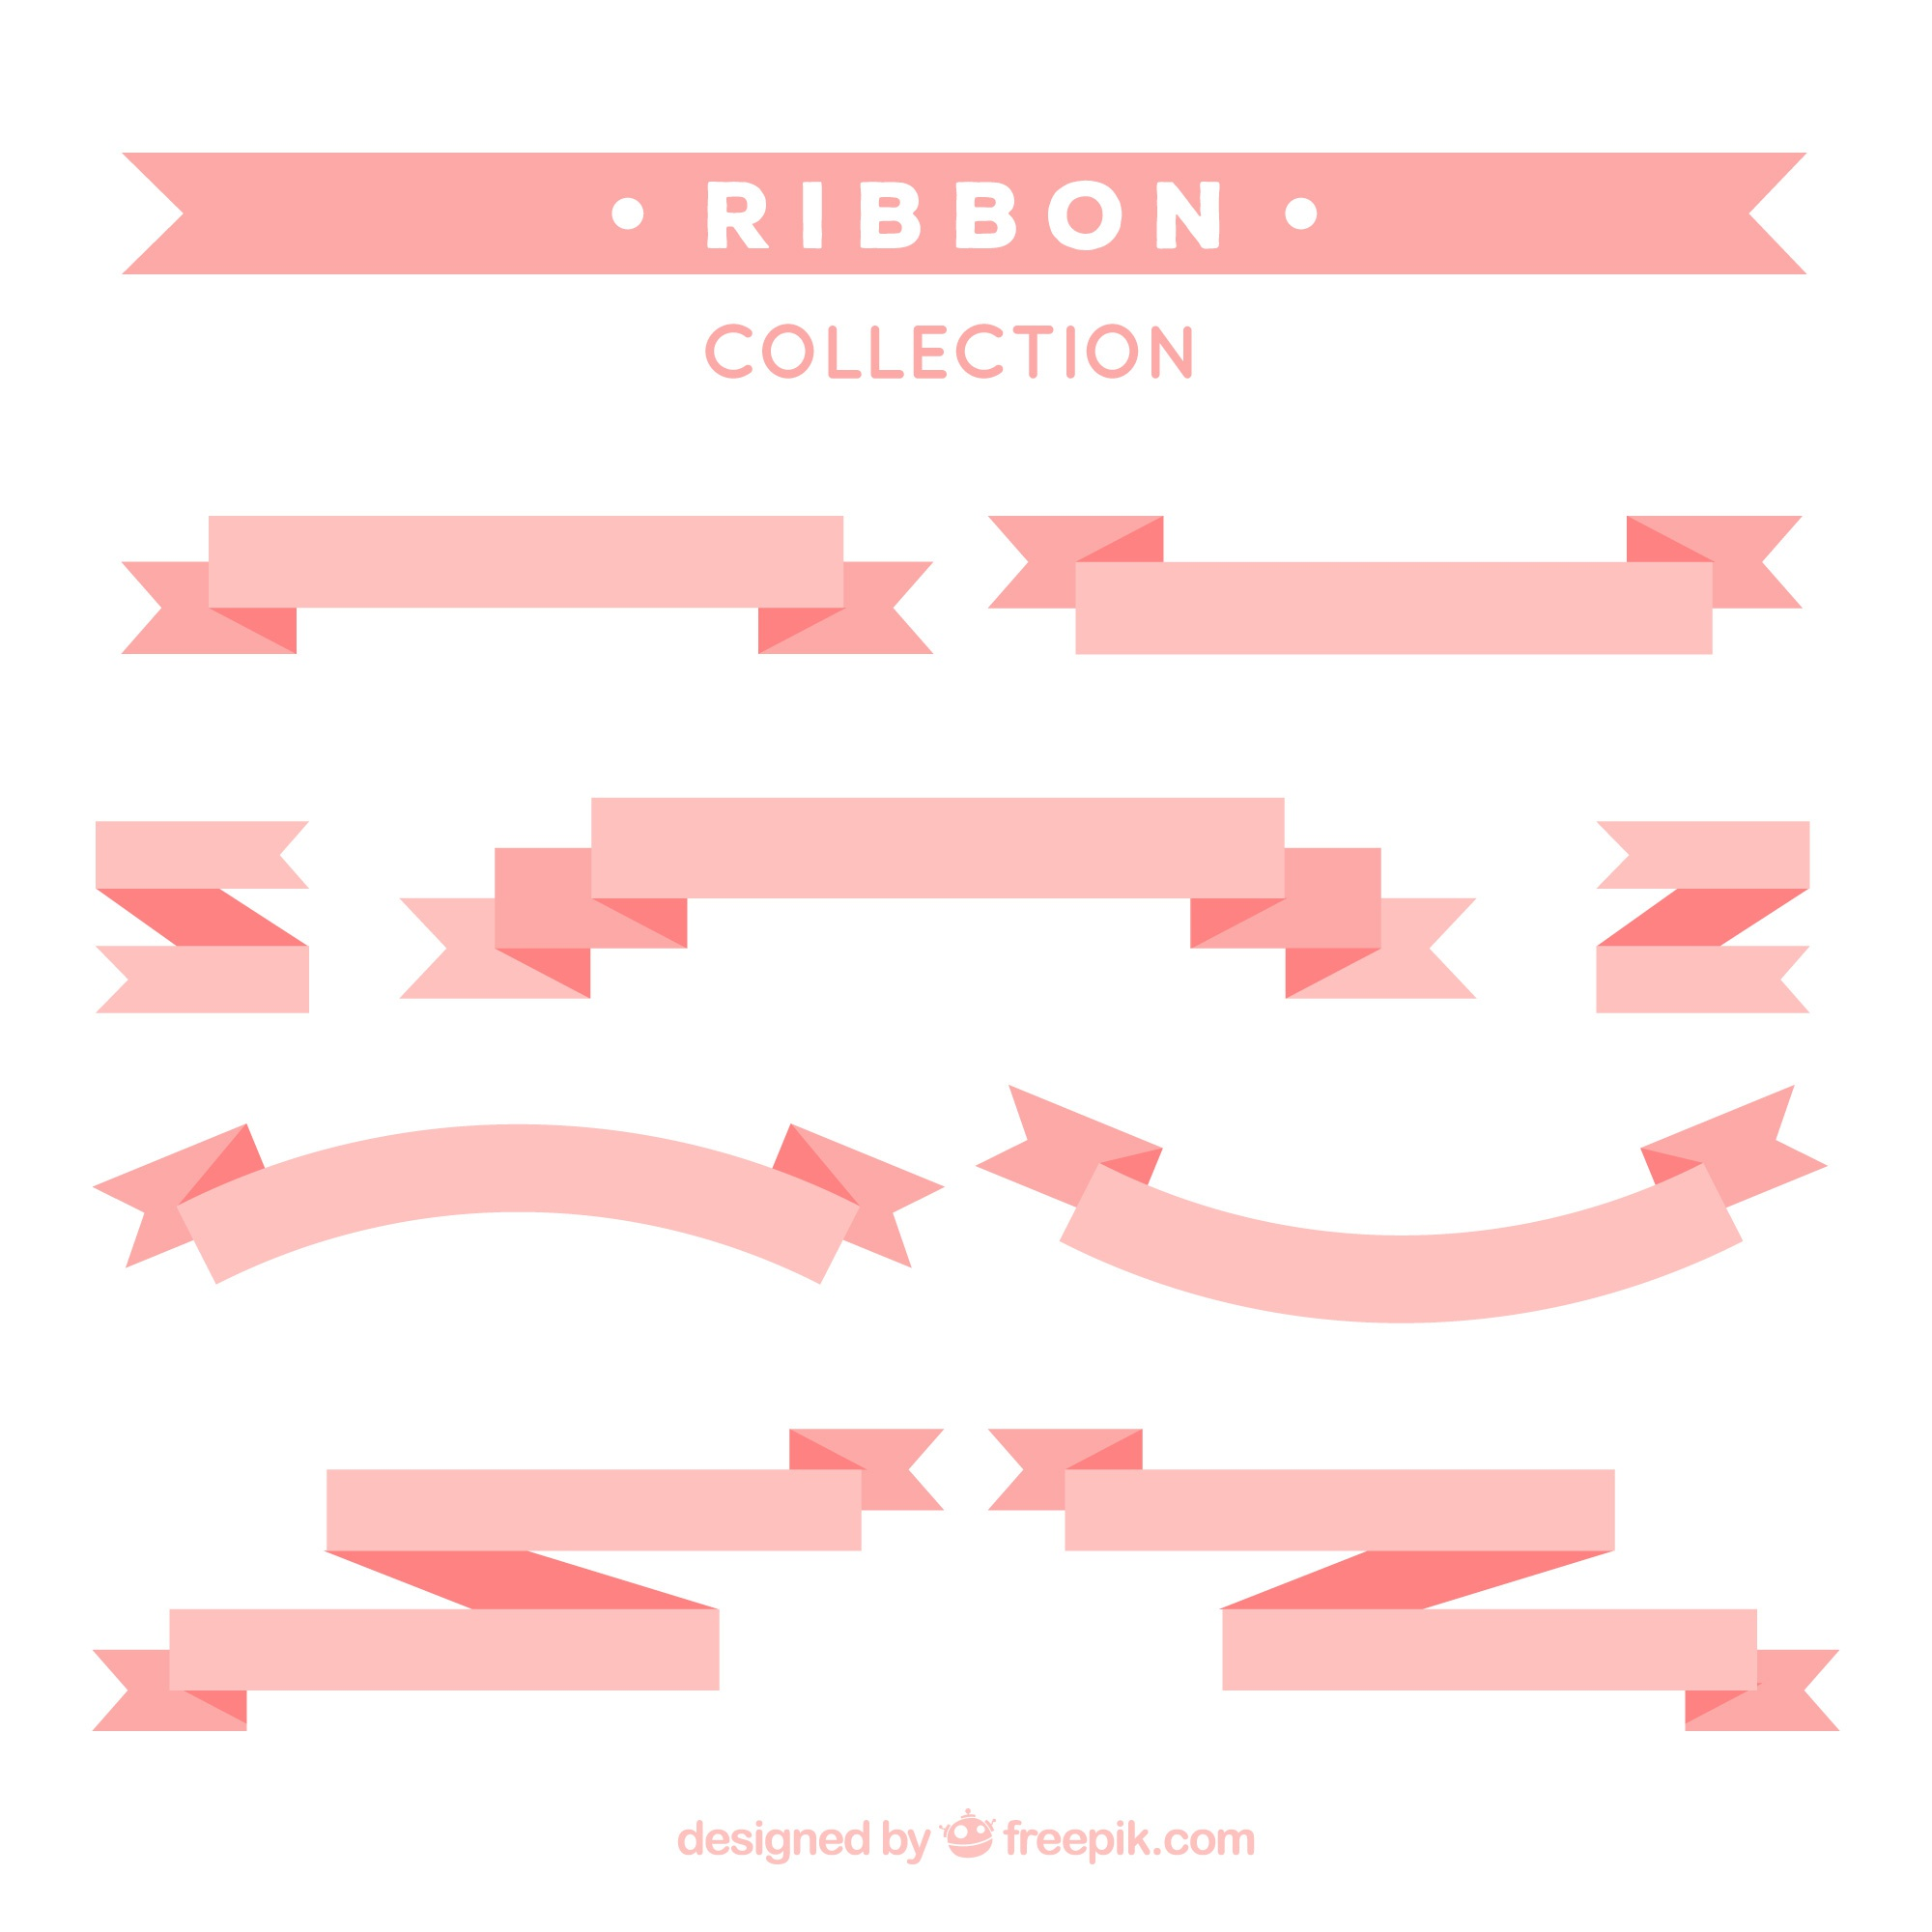 Decorative pink ribbons in flat design